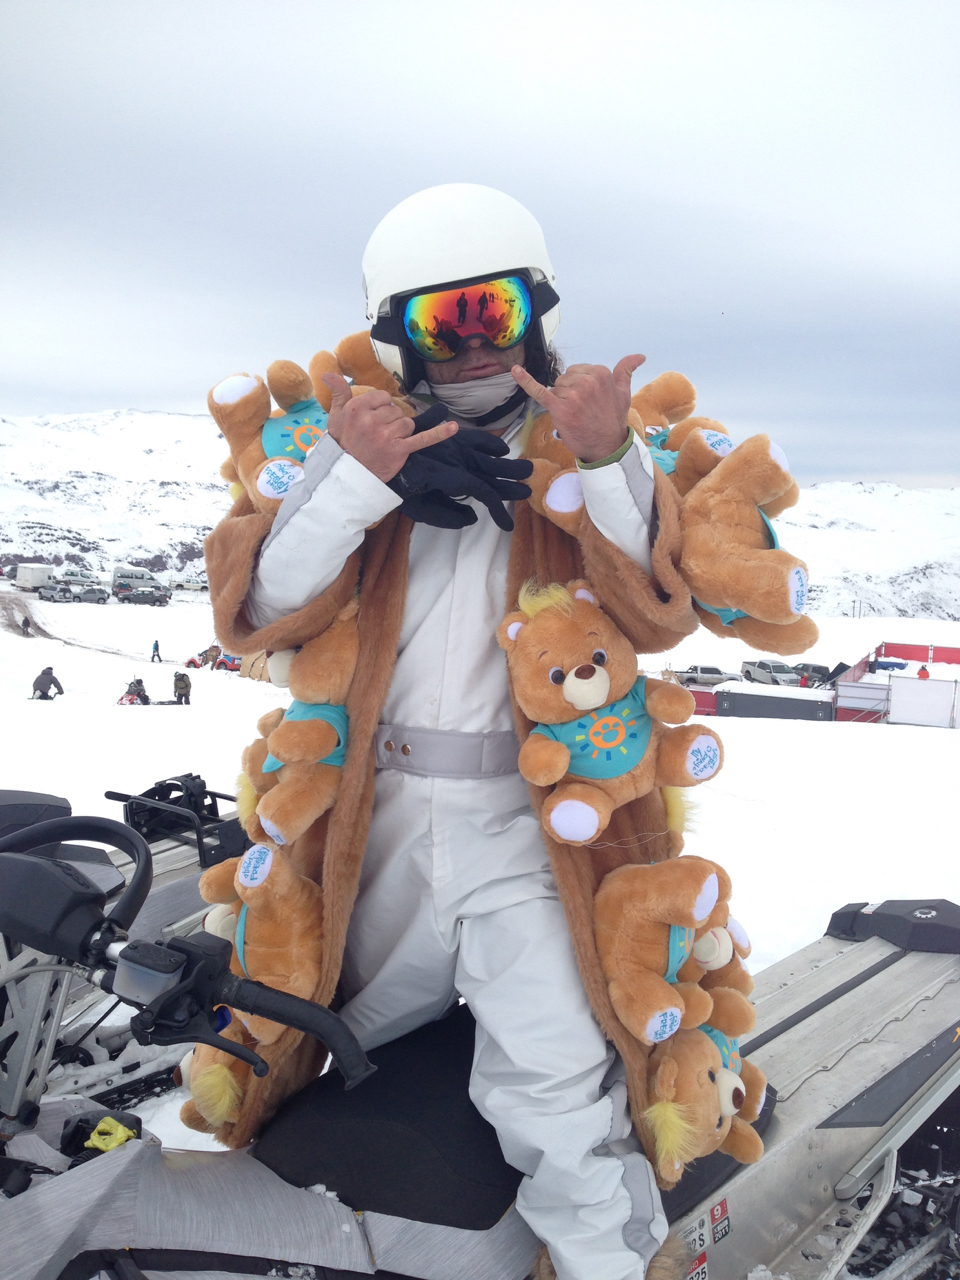 This Teddy Bear wardrobe piece was next level. I'm sure it was nice and warm too. Chile, South America